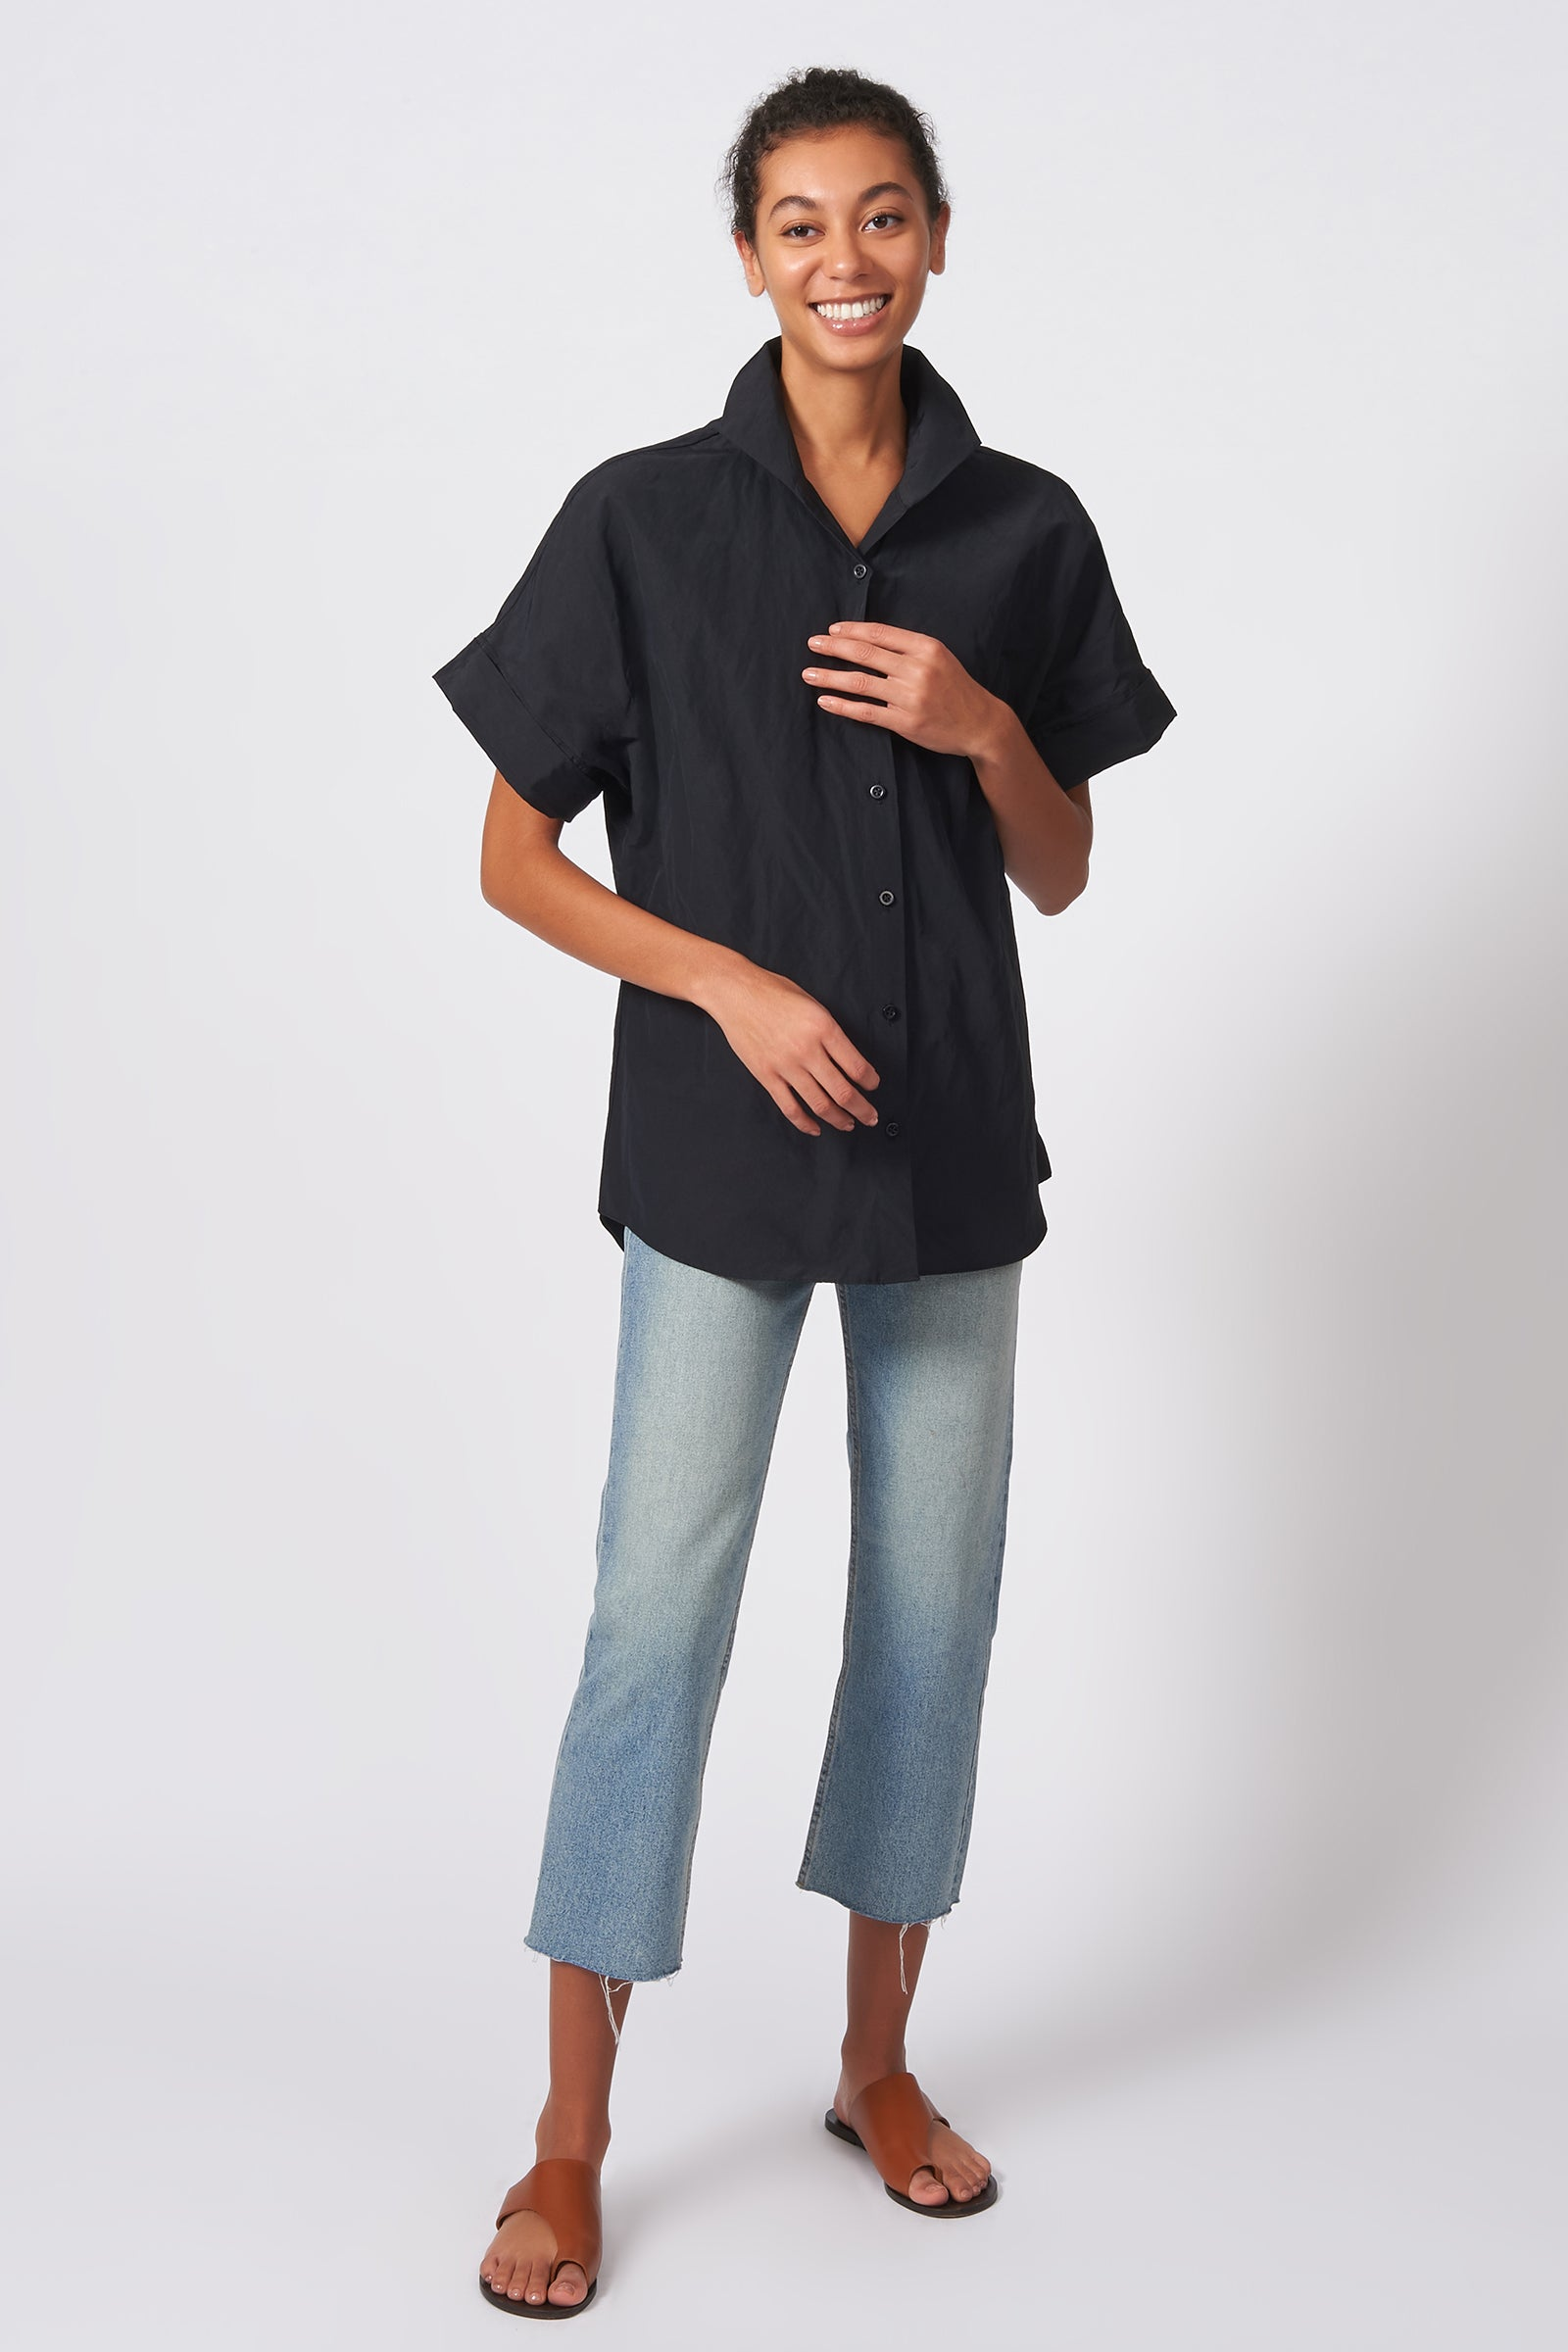 Kal Rieman Kimono Shirt in Black Cotton Nylon on Model Front Full View